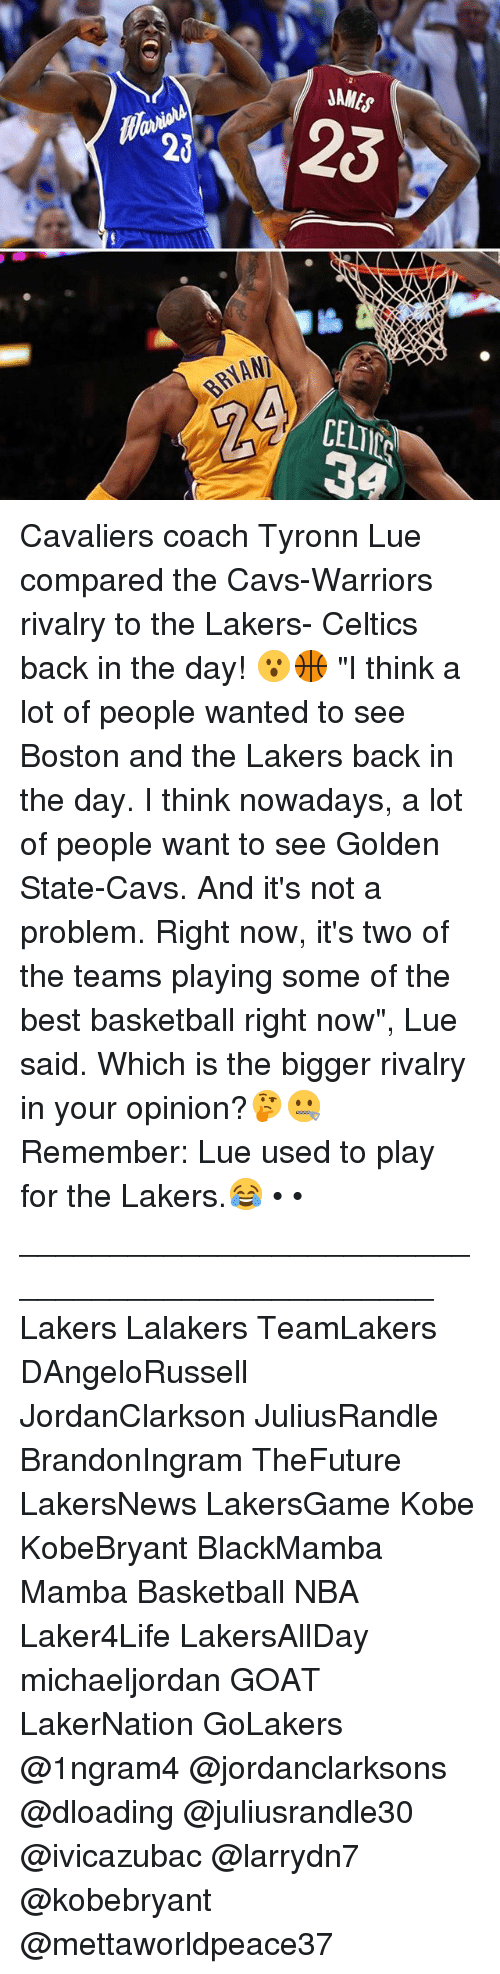 """Basketball, Cavs, and Los Angeles Lakers: BAYAN)  NAMES Cavaliers coach Tyronn Lue compared the Cavs-Warriors rivalry to the Lakers- Celtics back in the day! 😮🏀 """"I think a lot of people wanted to see Boston and the Lakers back in the day. I think nowadays, a lot of people want to see Golden State-Cavs. And it's not a problem. Right now, it's two of the teams playing some of the best basketball right now"""", Lue said. Which is the bigger rivalry in your opinion?🤔🤐 Remember: Lue used to play for the Lakers.😂 • • ________________________________________________ Lakers Lalakers TeamLakers DAngeloRussell JordanClarkson JuliusRandle BrandonIngram TheFuture LakersNews LakersGame Kobe KobeBryant BlackMamba Mamba Basketball NBA Laker4Life LakersAllDay michaeljordan GOAT LakerNation GoLakers @1ngram4 @jordanclarksons @dloading @juliusrandle30 @ivicazubac @larrydn7 @kobebryant @mettaworldpeace37"""